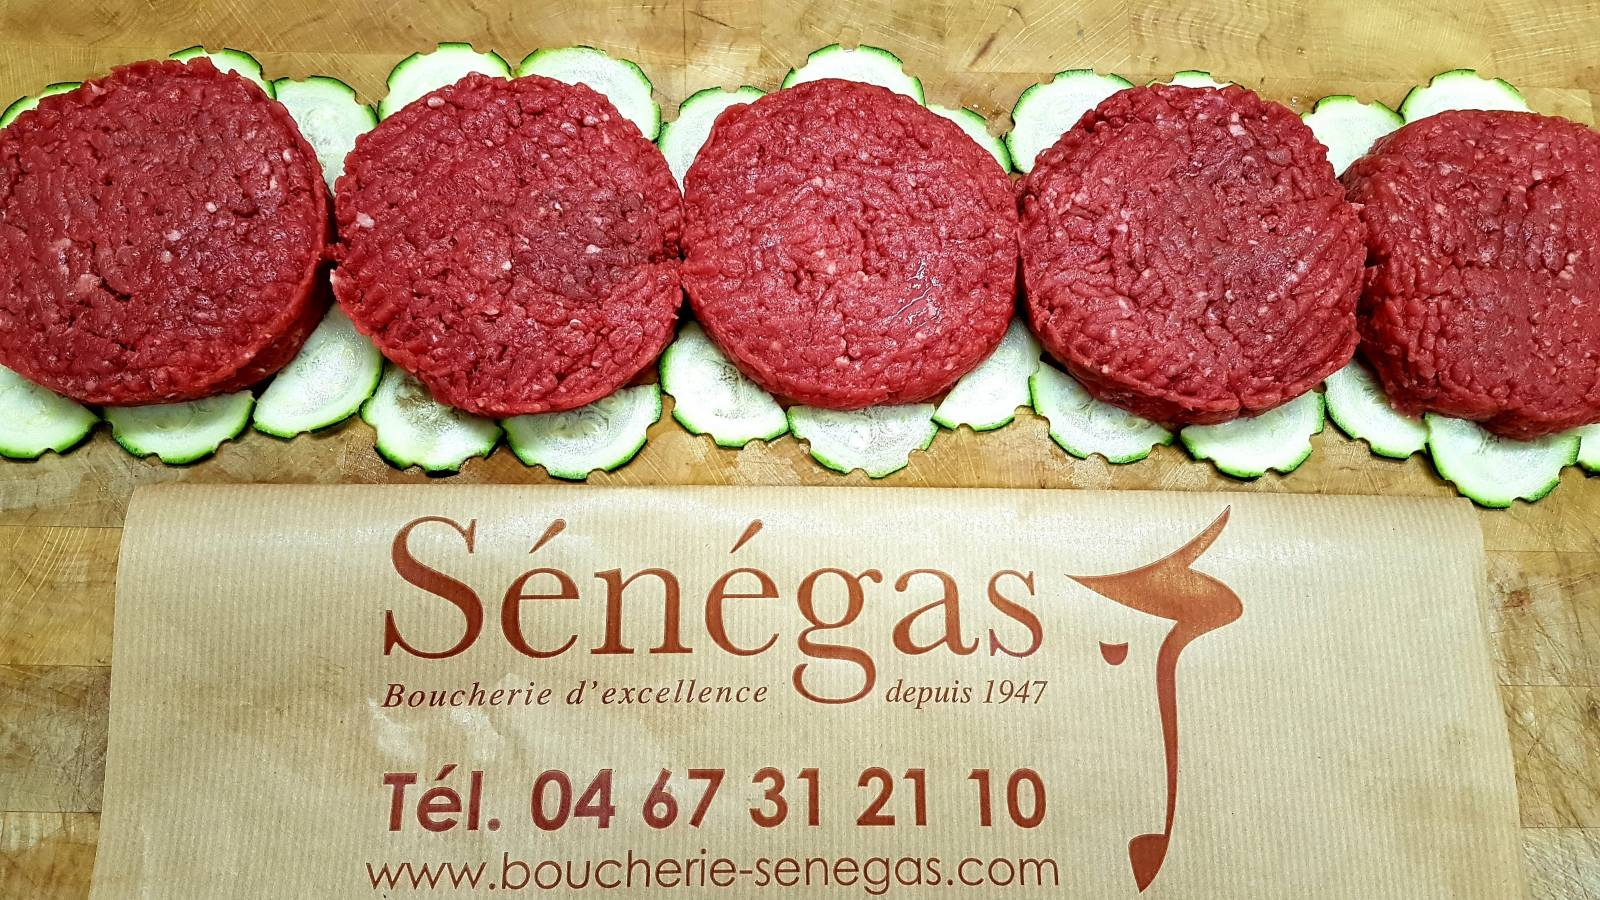 boucherie-senegas-steak-hache-boeuf